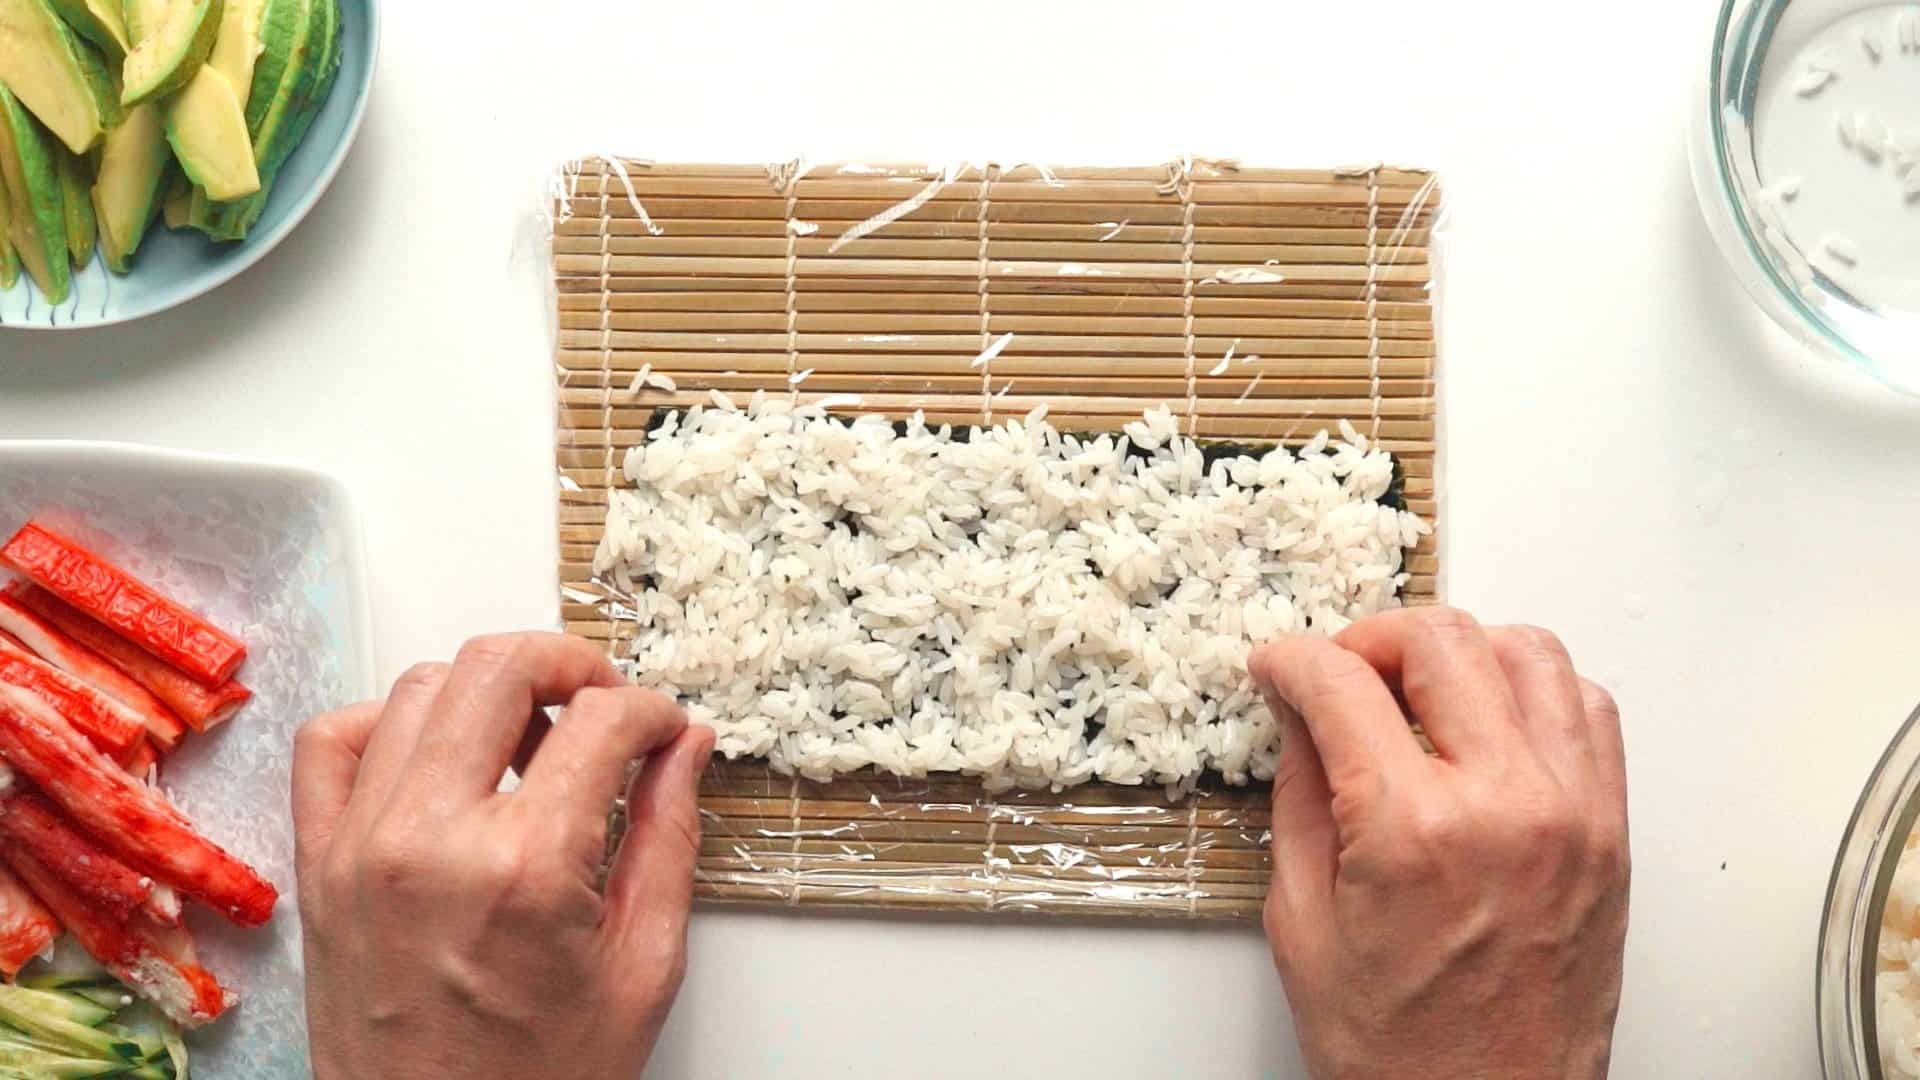 Spread the rice using the tips of your fingers.